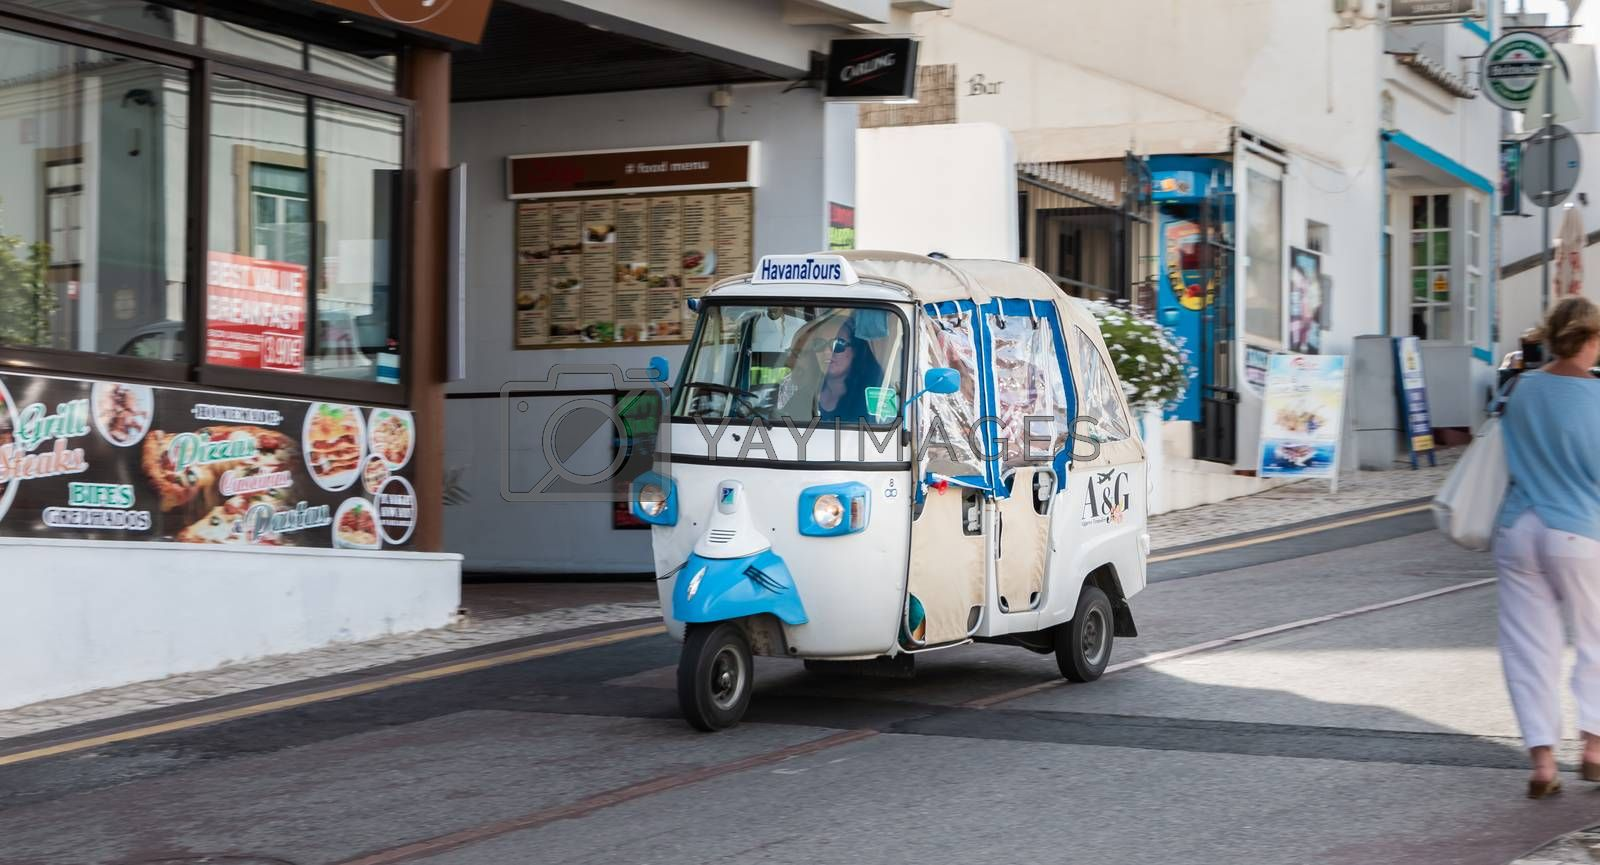 Albufeira, Portugal - May 3, 2018: Tuk Tuk carrying tourists traveling on a street in the historic city center on a spring day